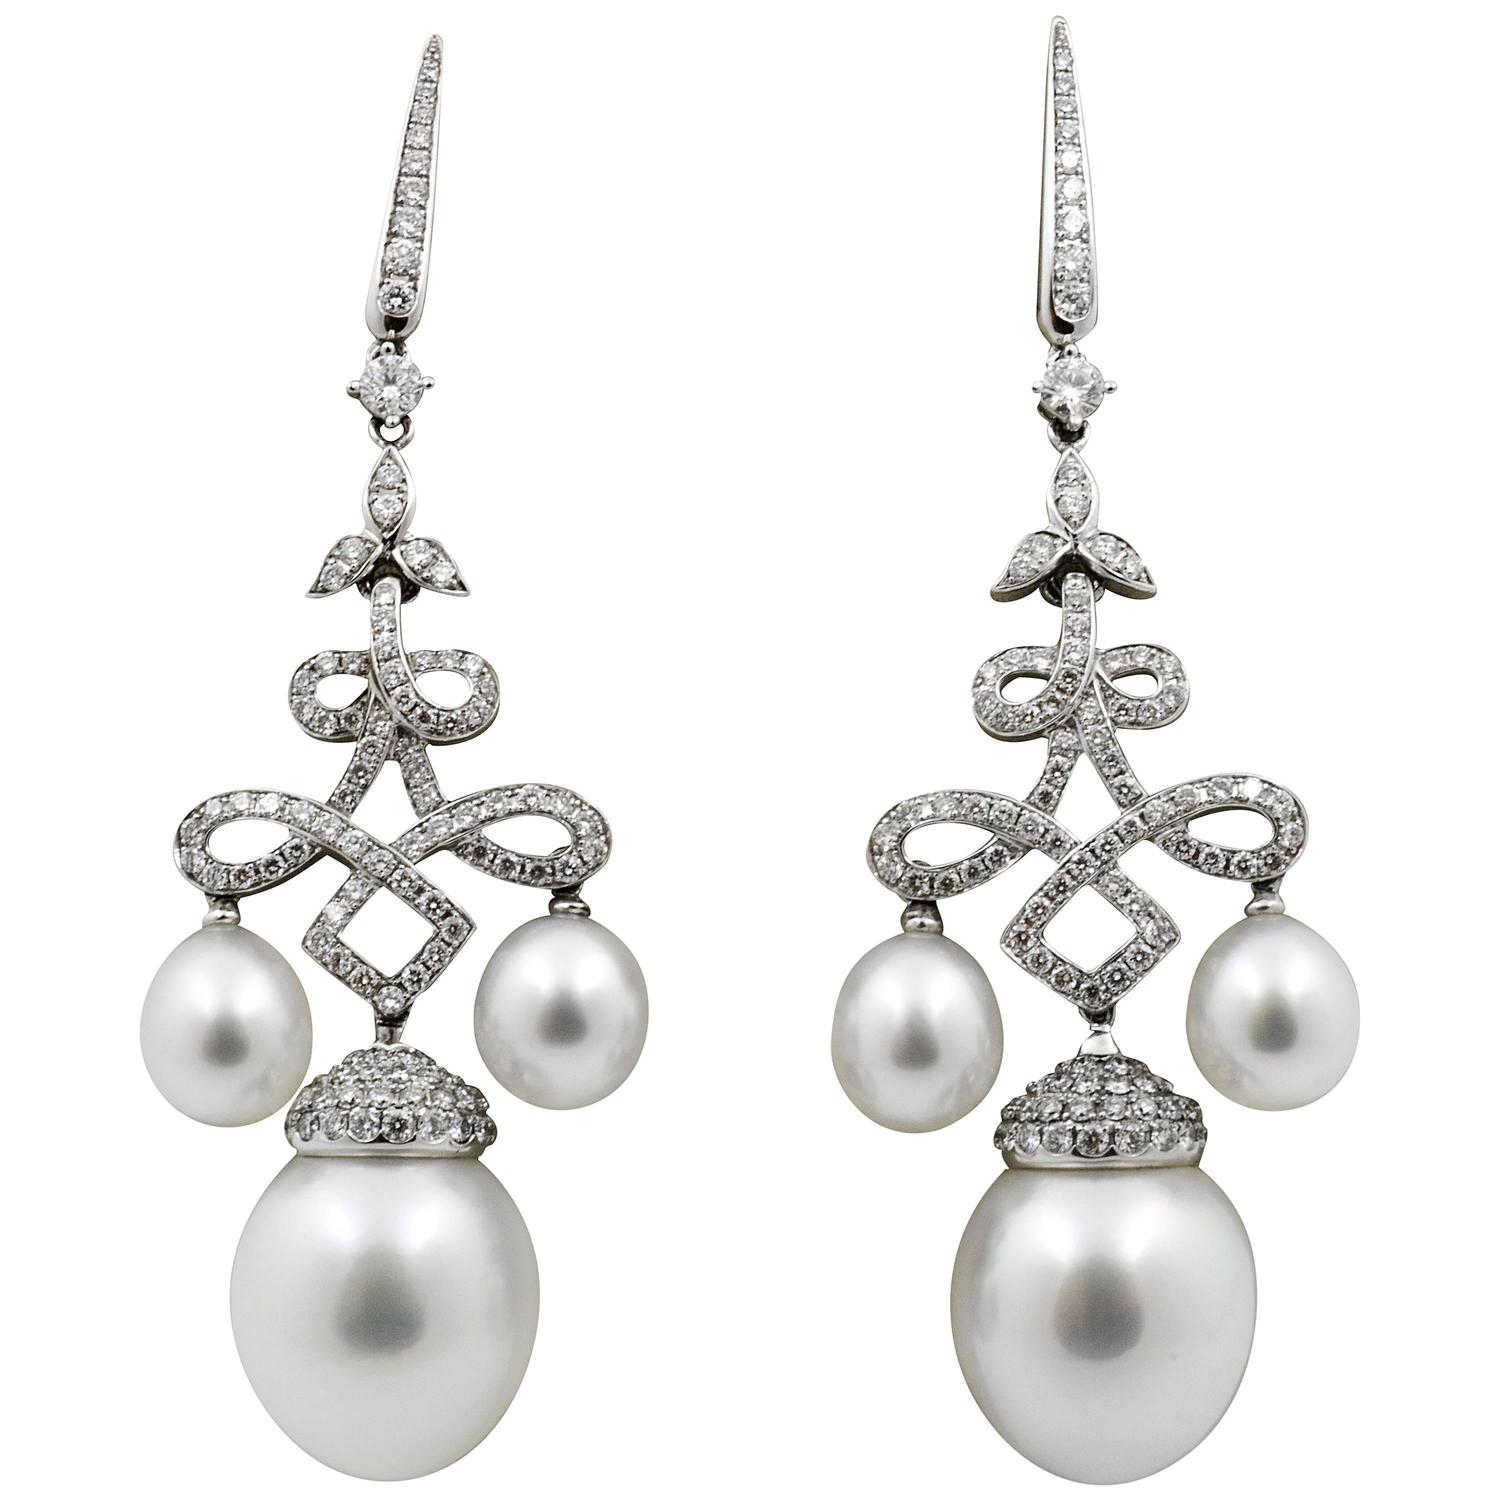 Classic South Sea Pearl Gold Chandelier Earrings For Sale at 1stdibs